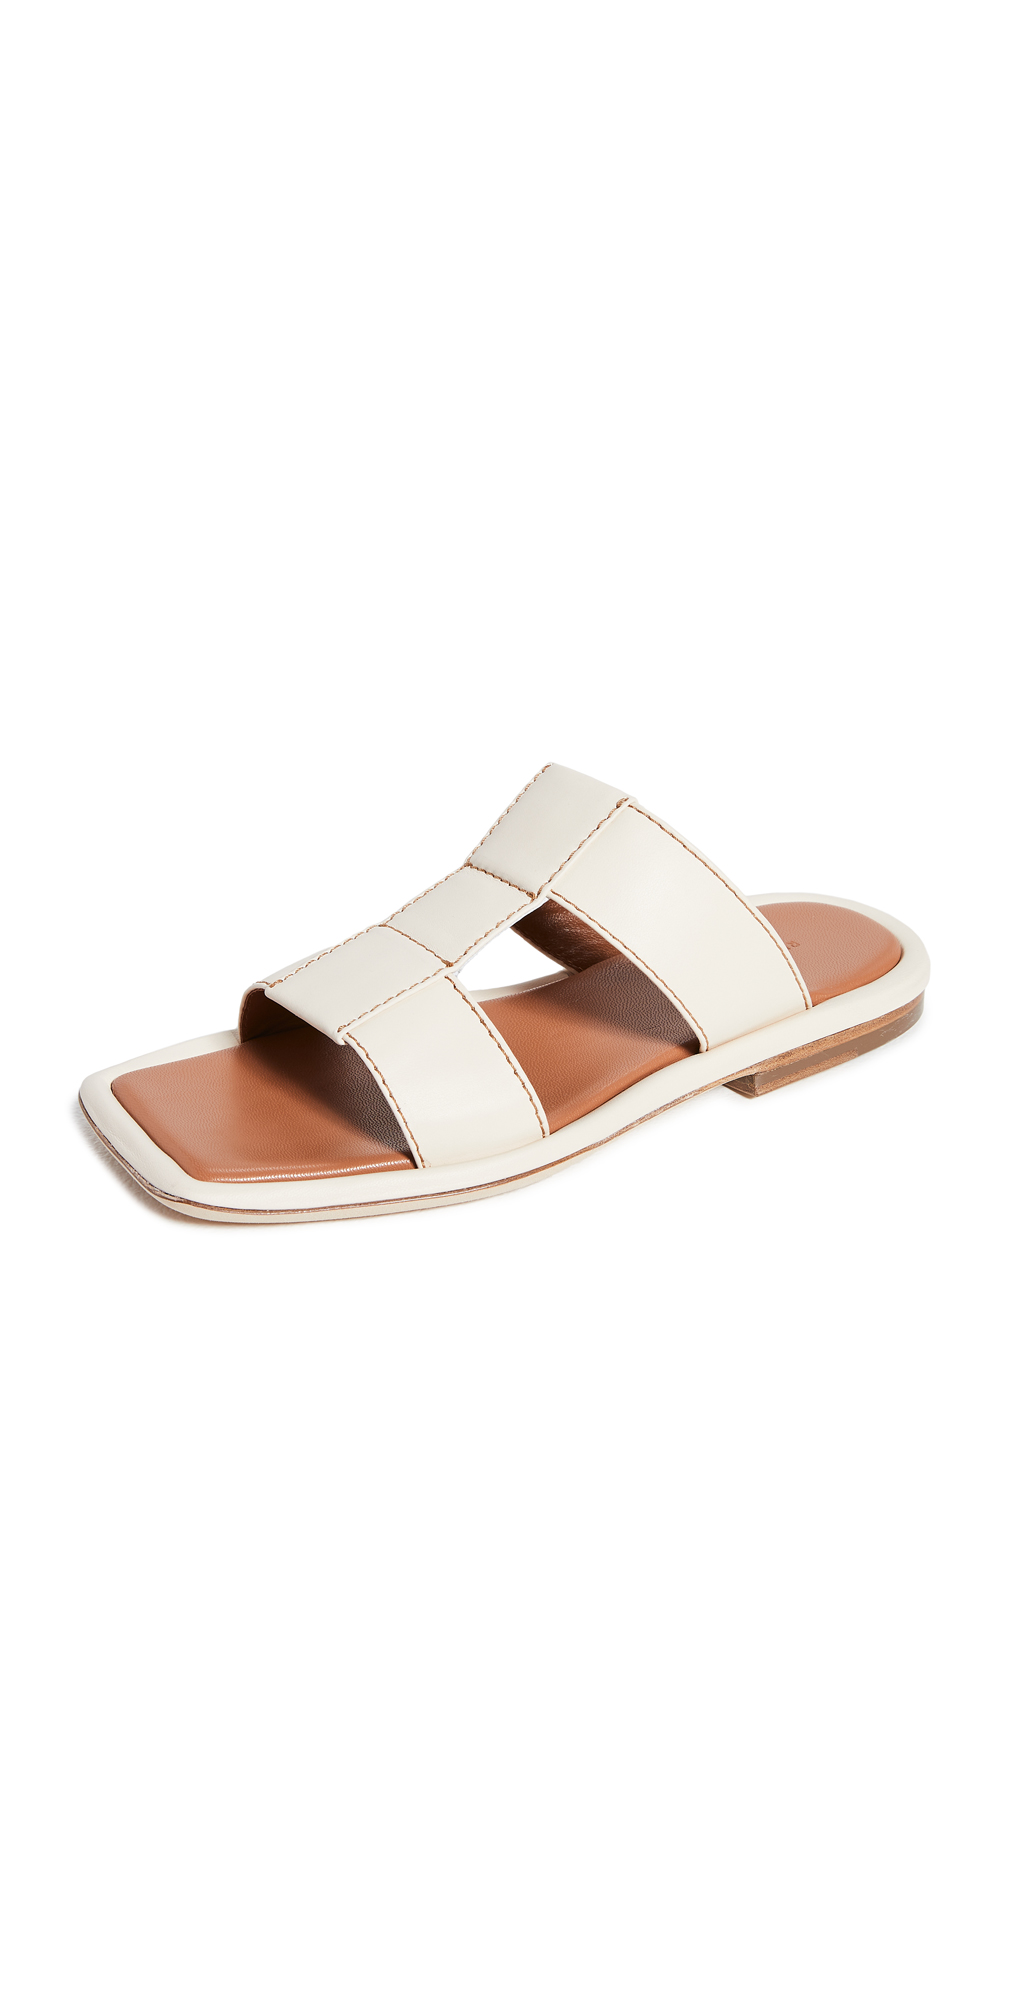 Rejina Pyo Rowan 10mm Sandals